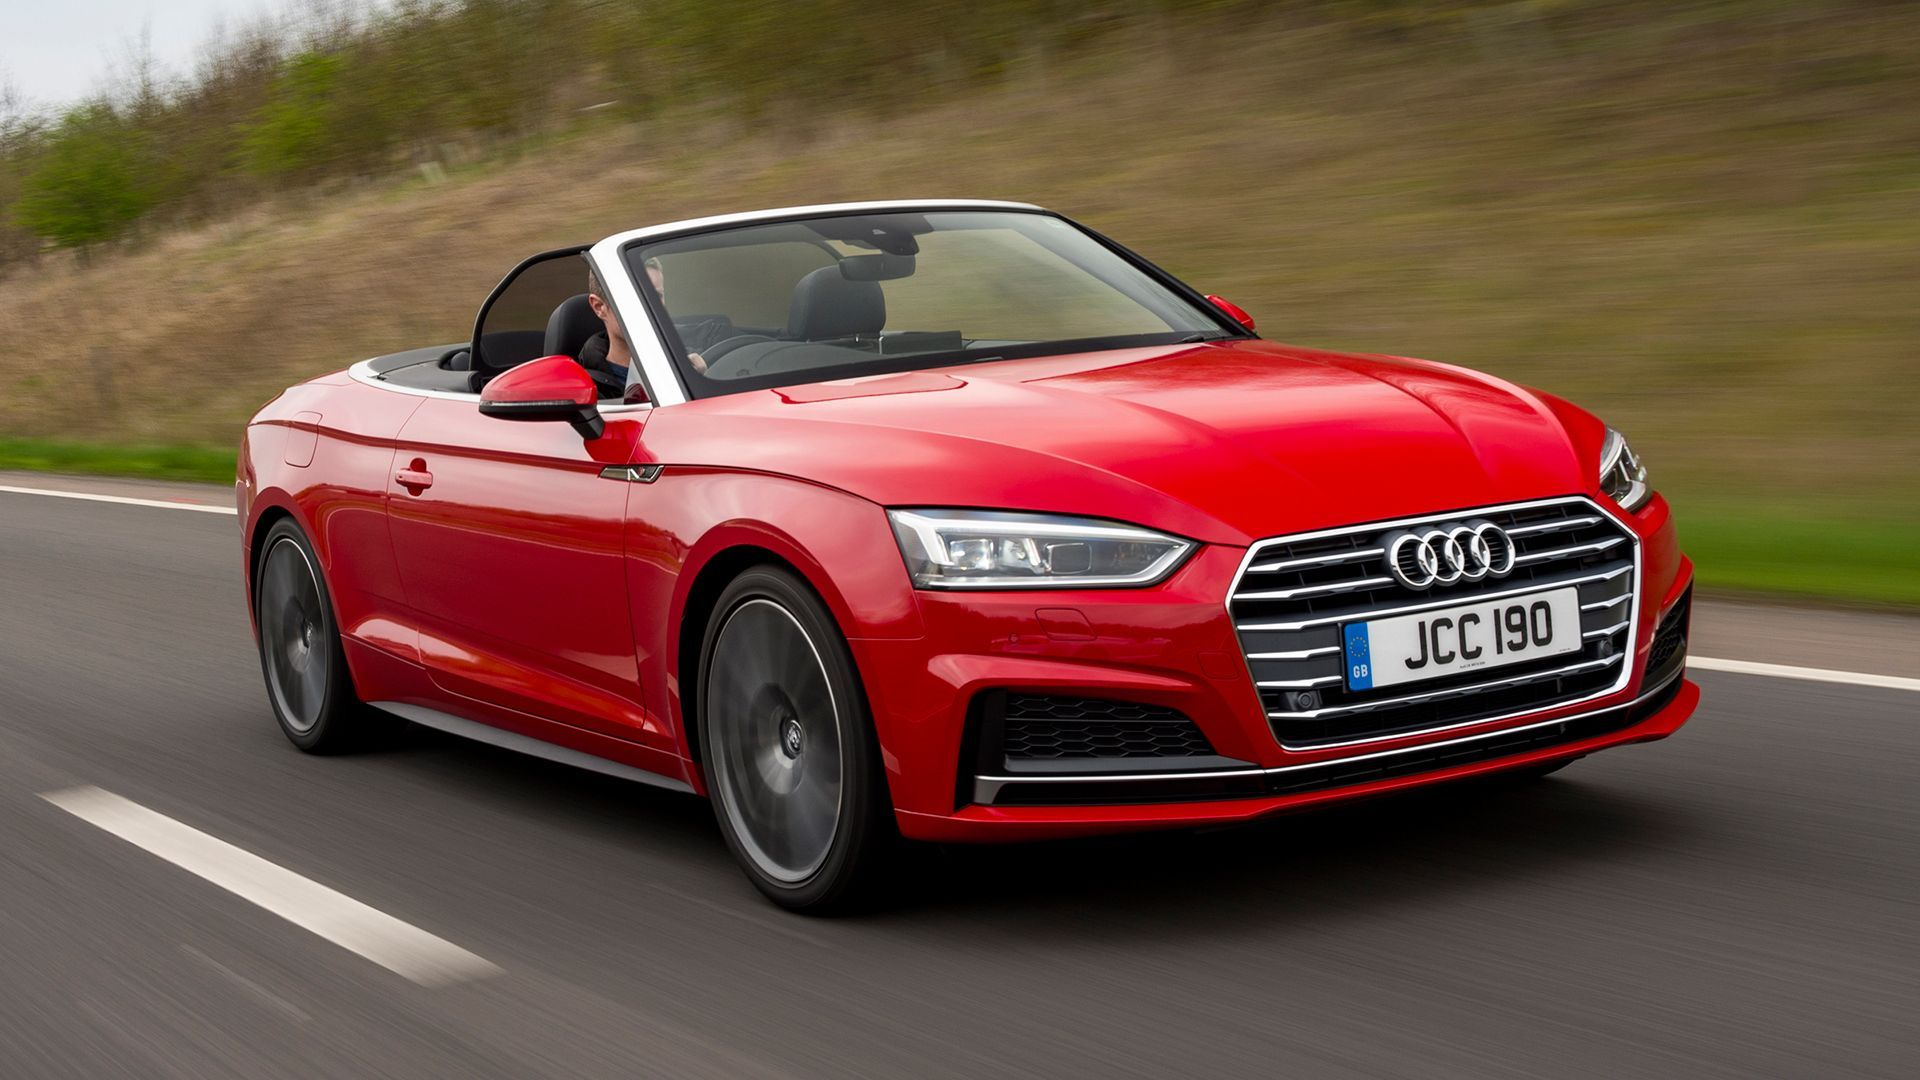 Audi A5 Cabriolet Edition 1 image